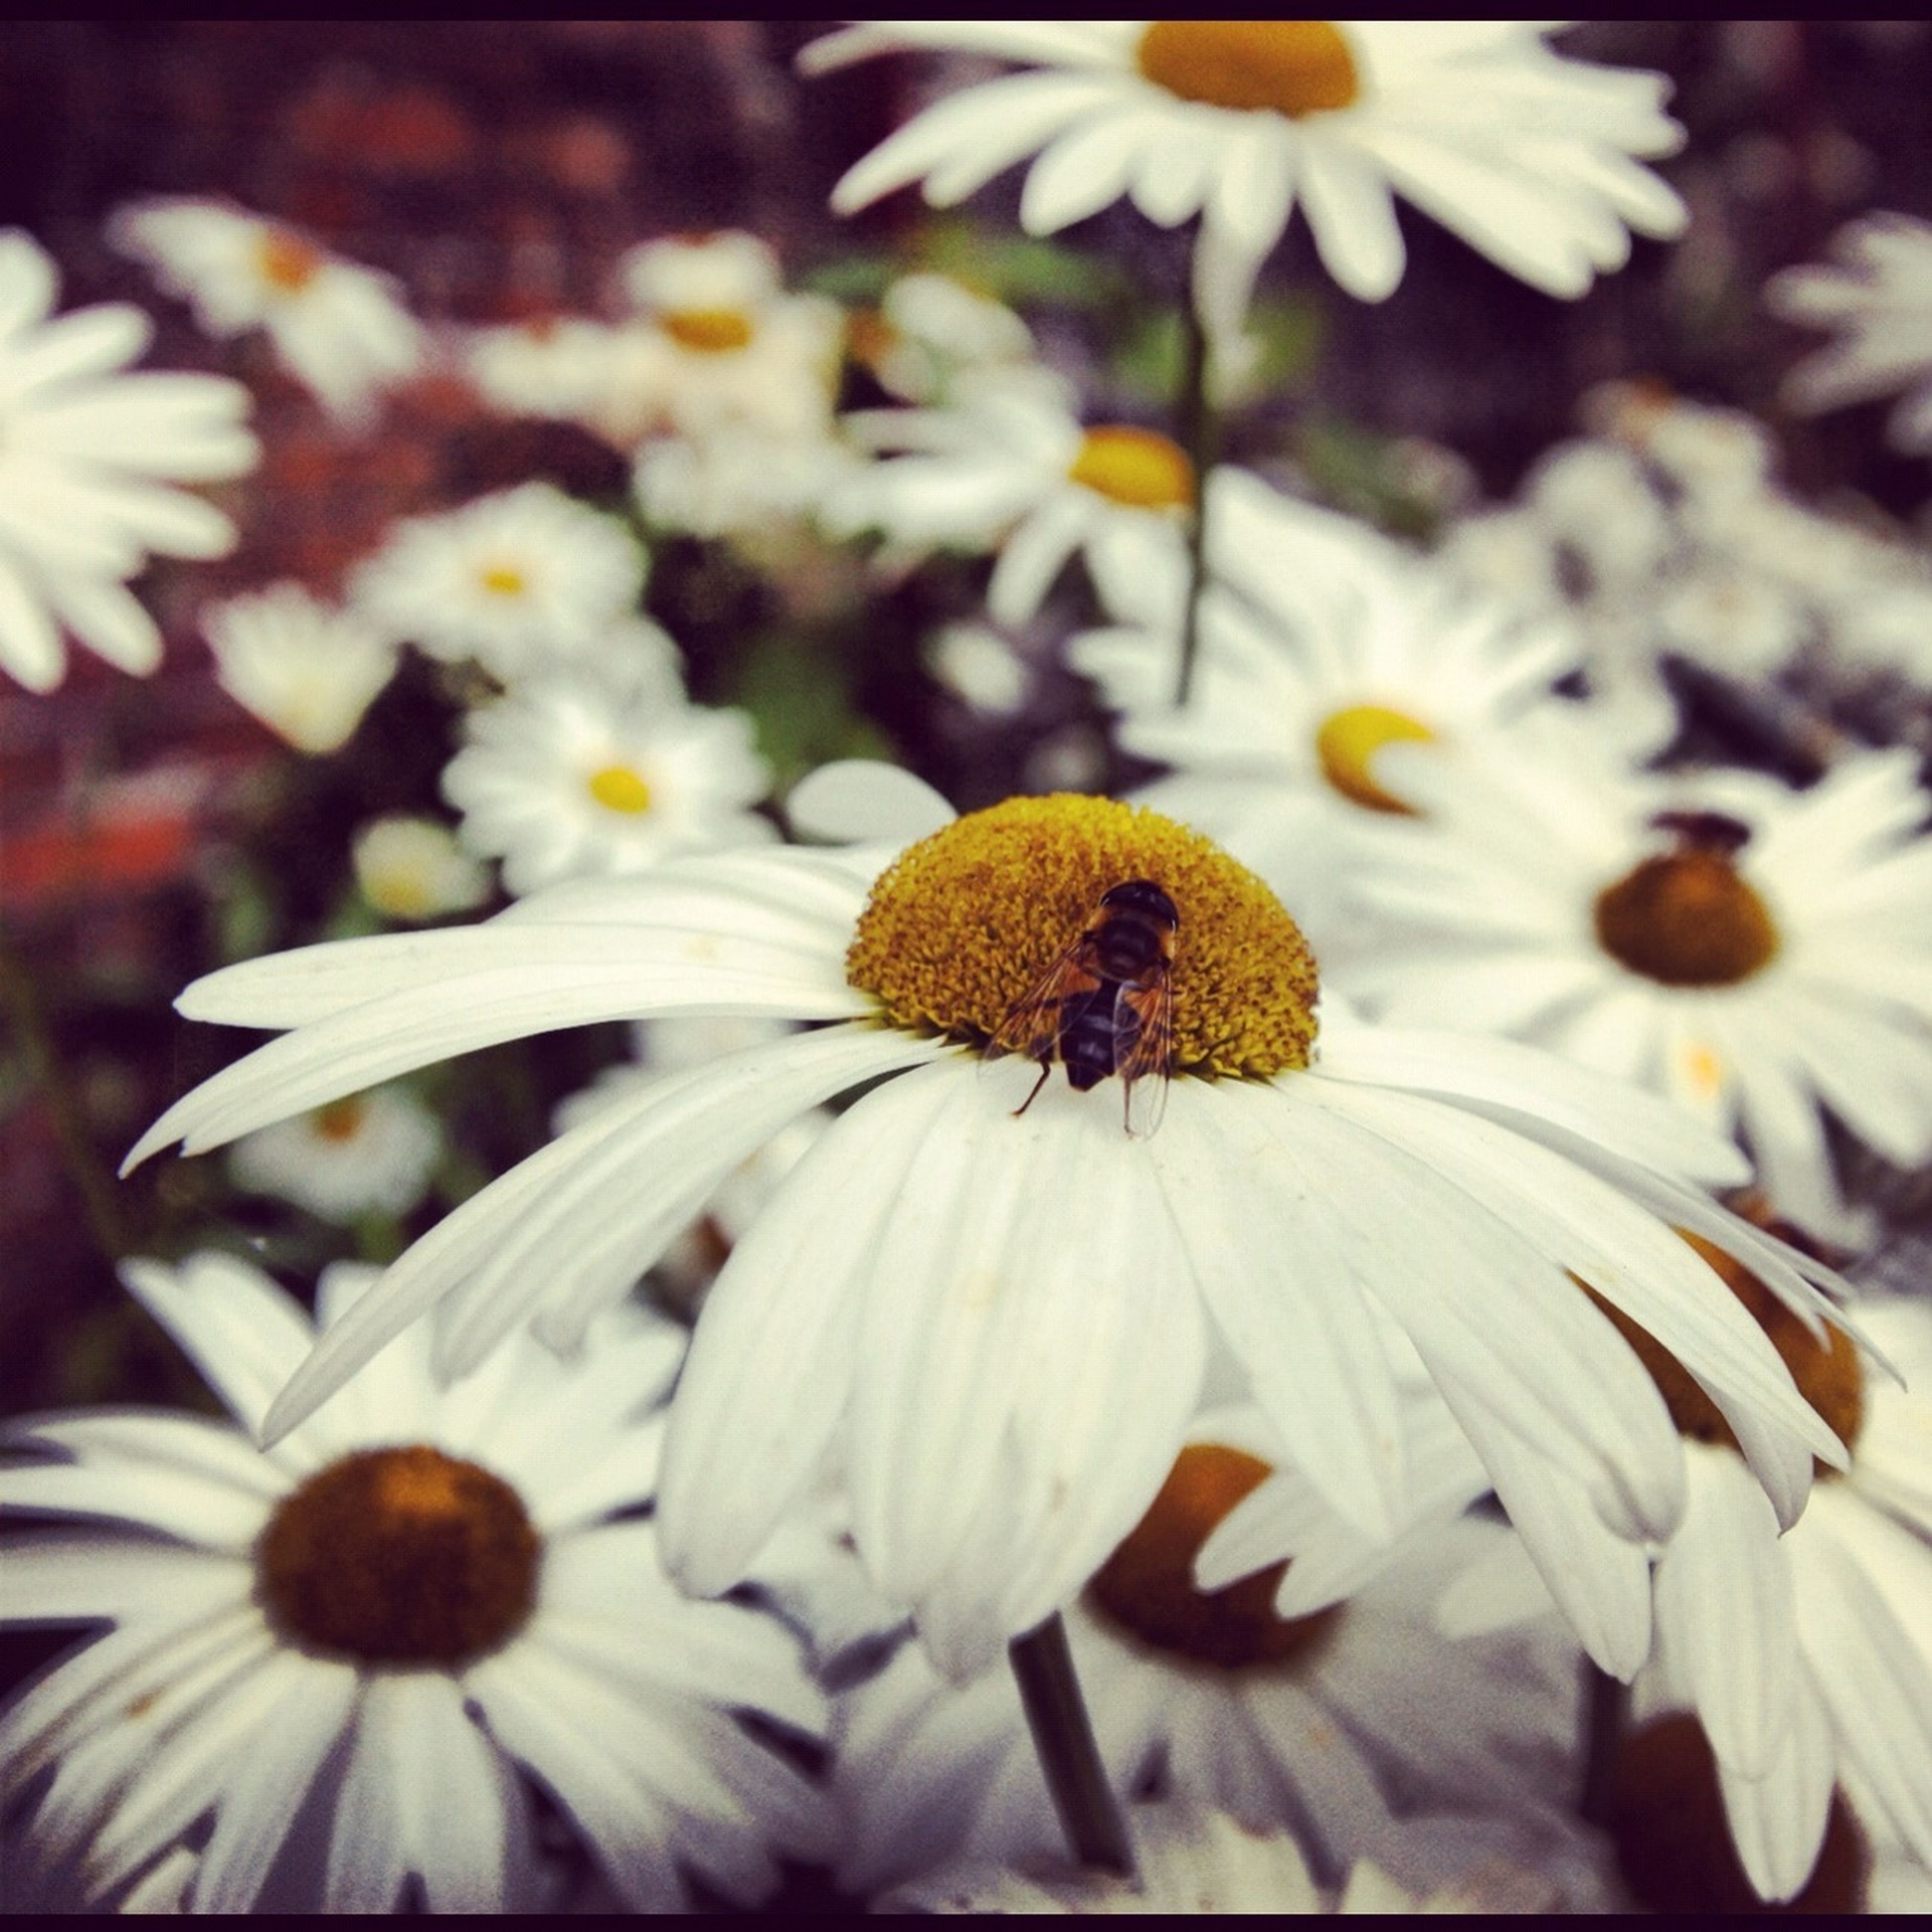 flower, petal, flower head, freshness, fragility, pollen, growth, beauty in nature, yellow, close-up, blooming, nature, focus on foreground, insect, white color, plant, daisy, in bloom, selective focus, day